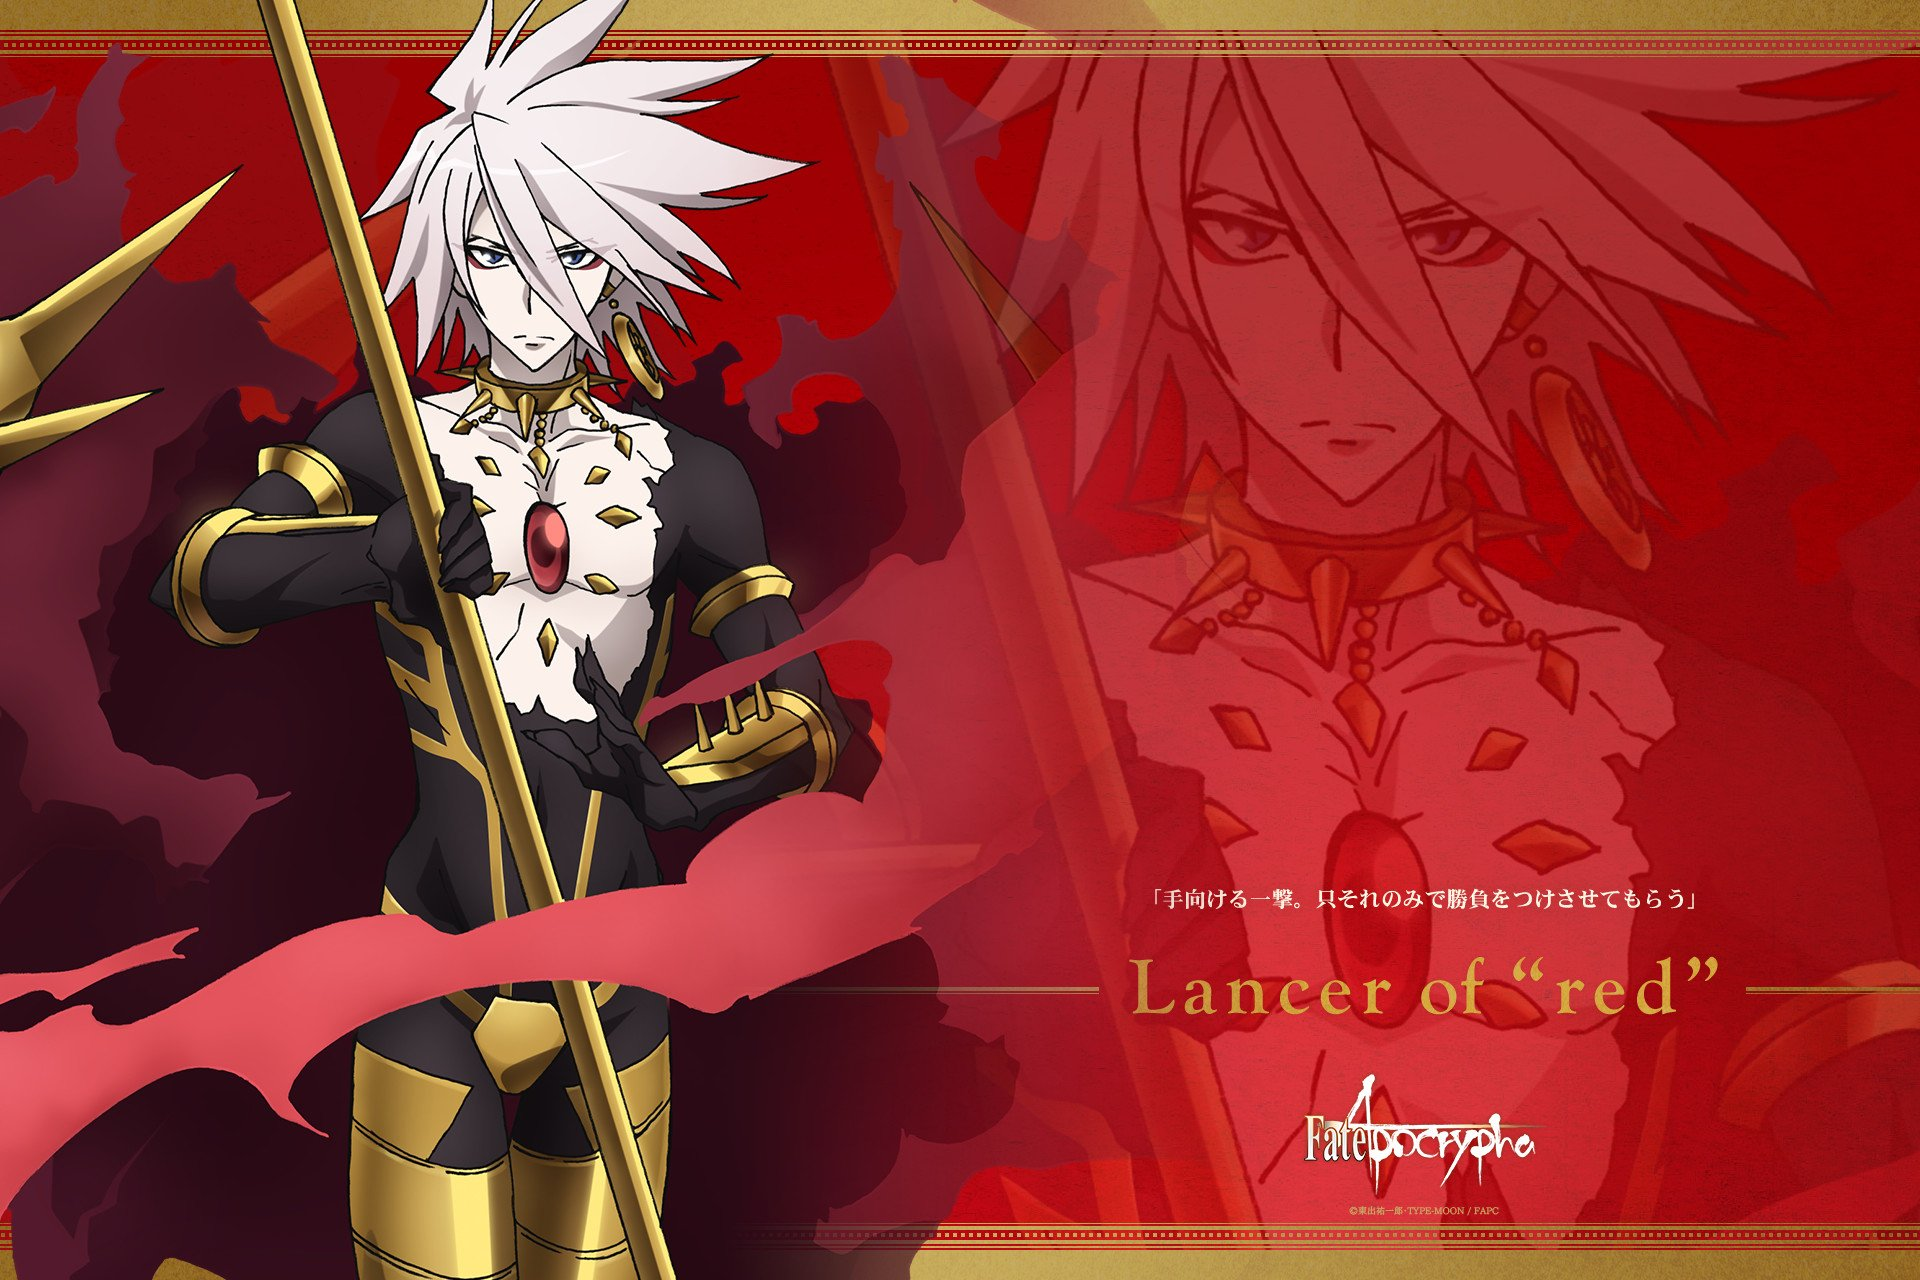 Anime - Fate/Apocrypha Lancer of Red (Fate/Apocrypha) Wallpaper